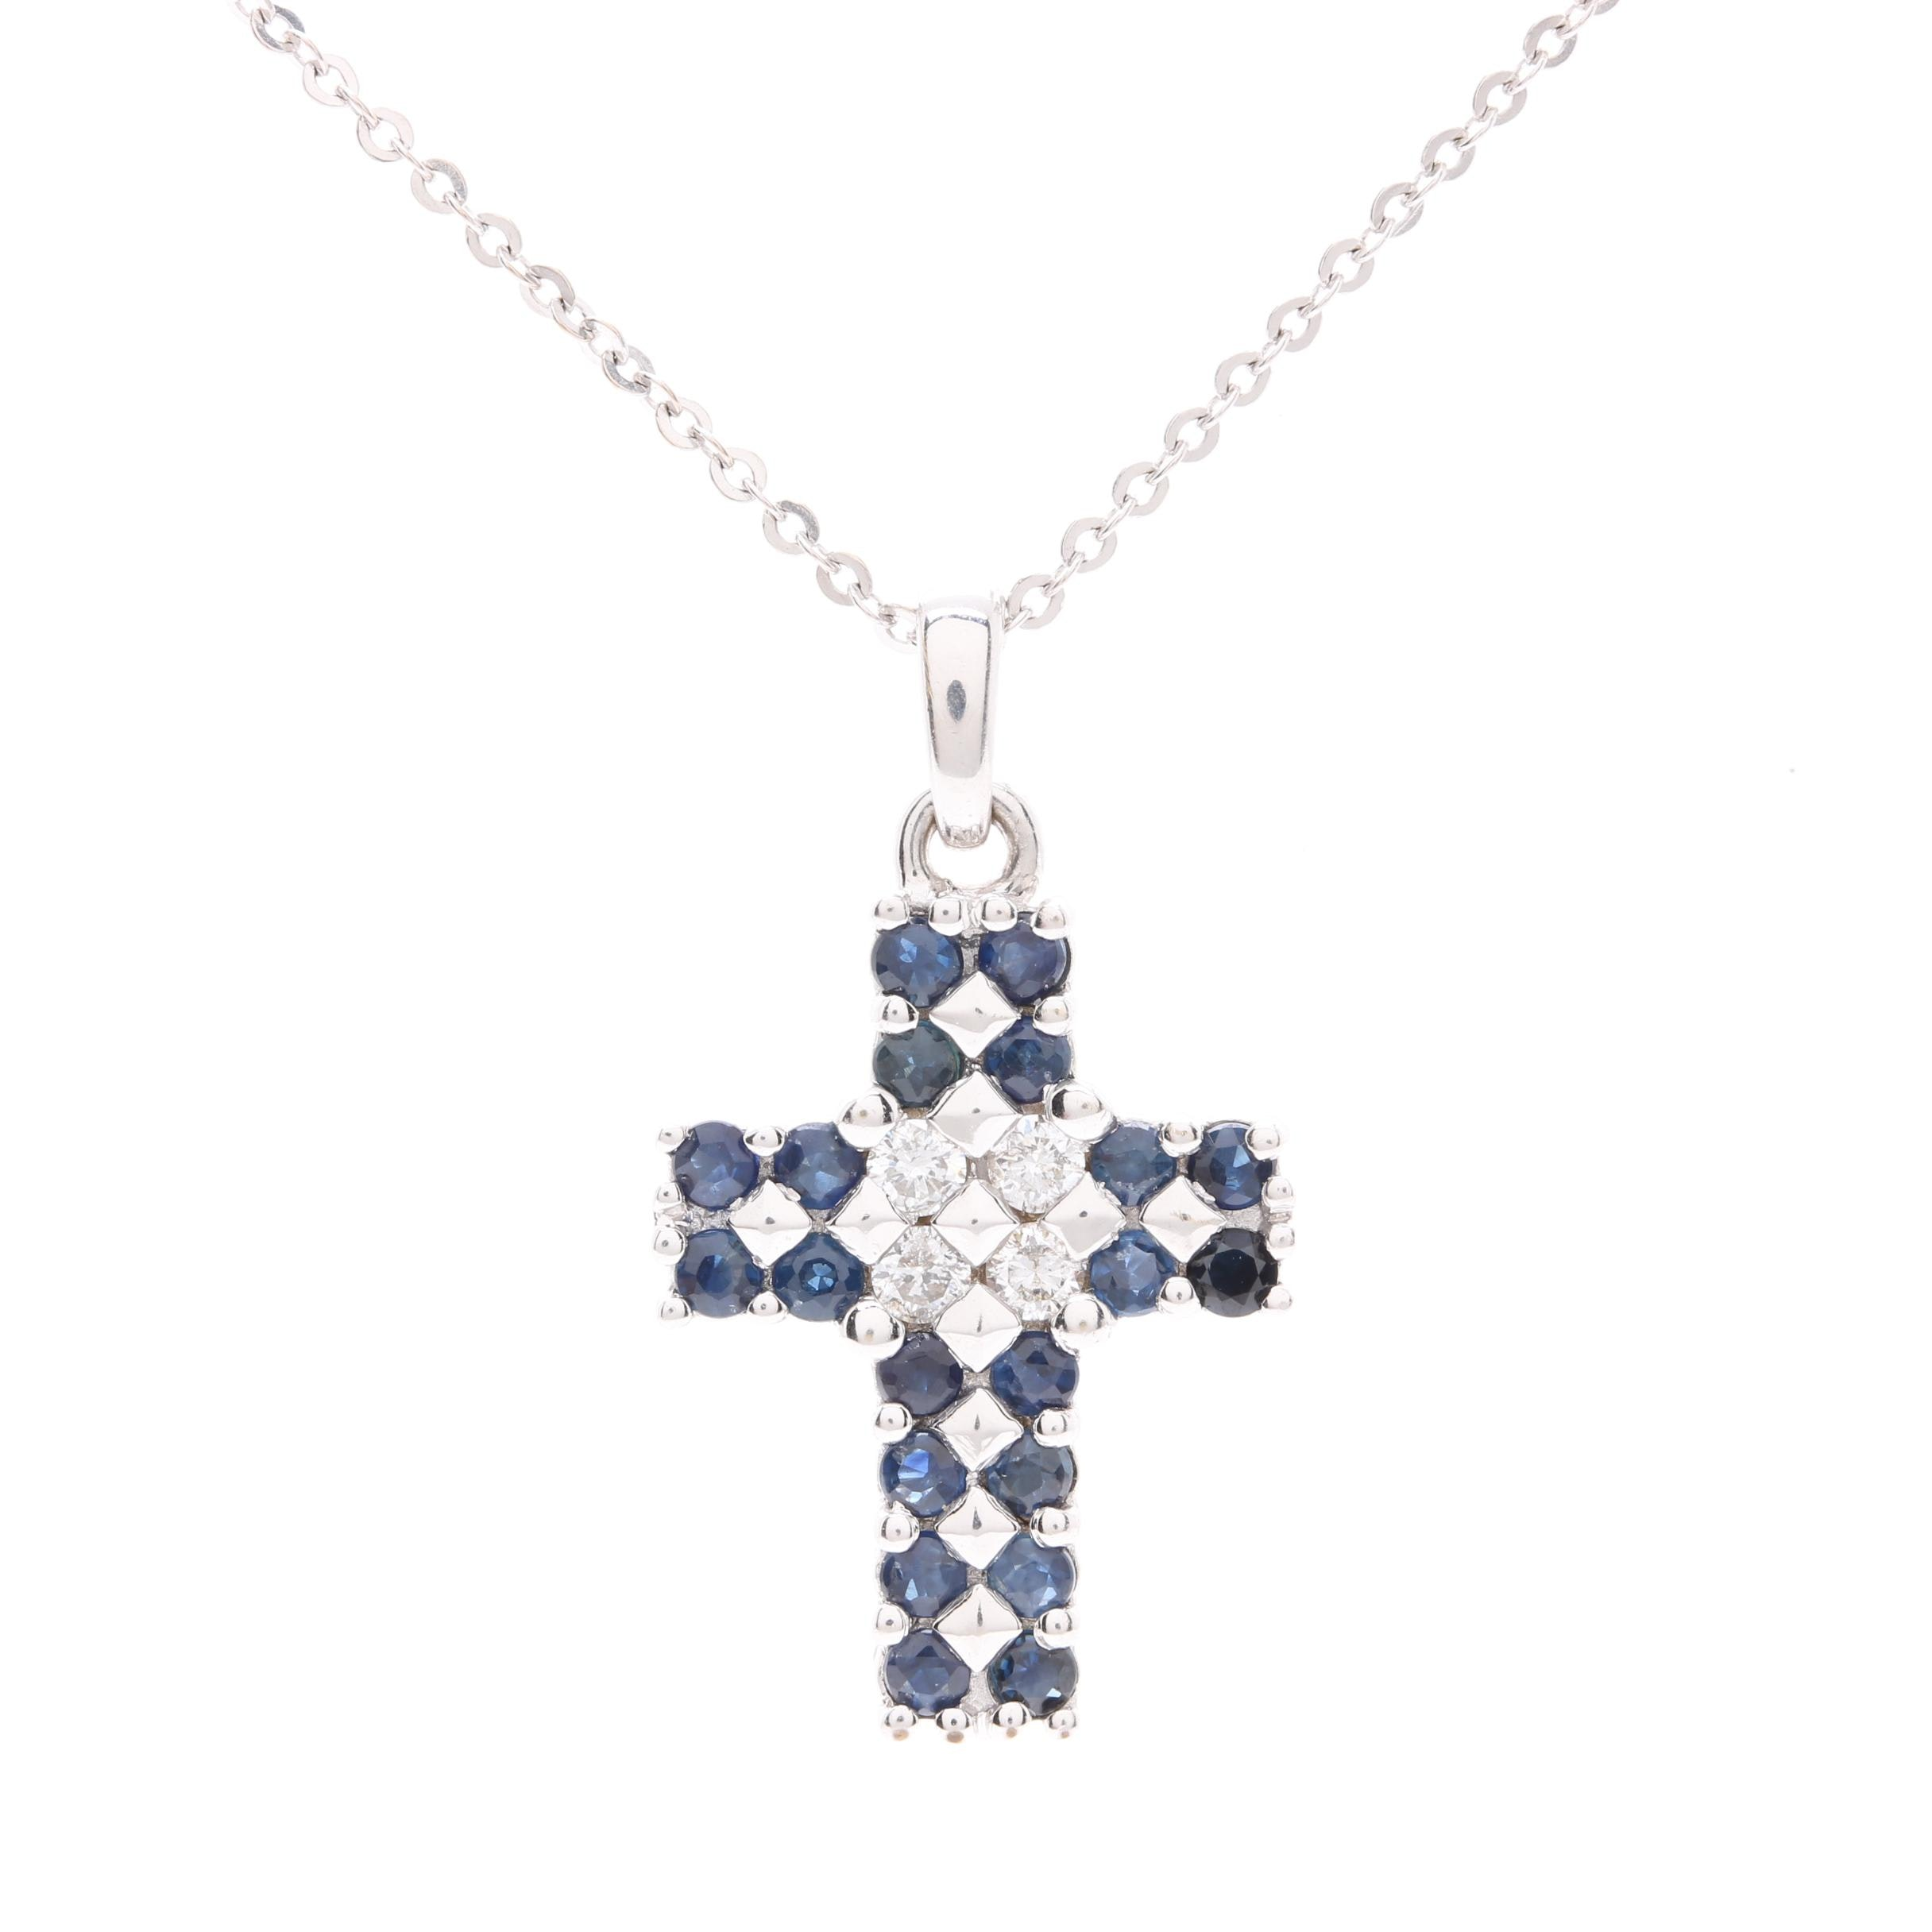 18K White Gold Diamond and Sapphire Cross Pendant Necklace